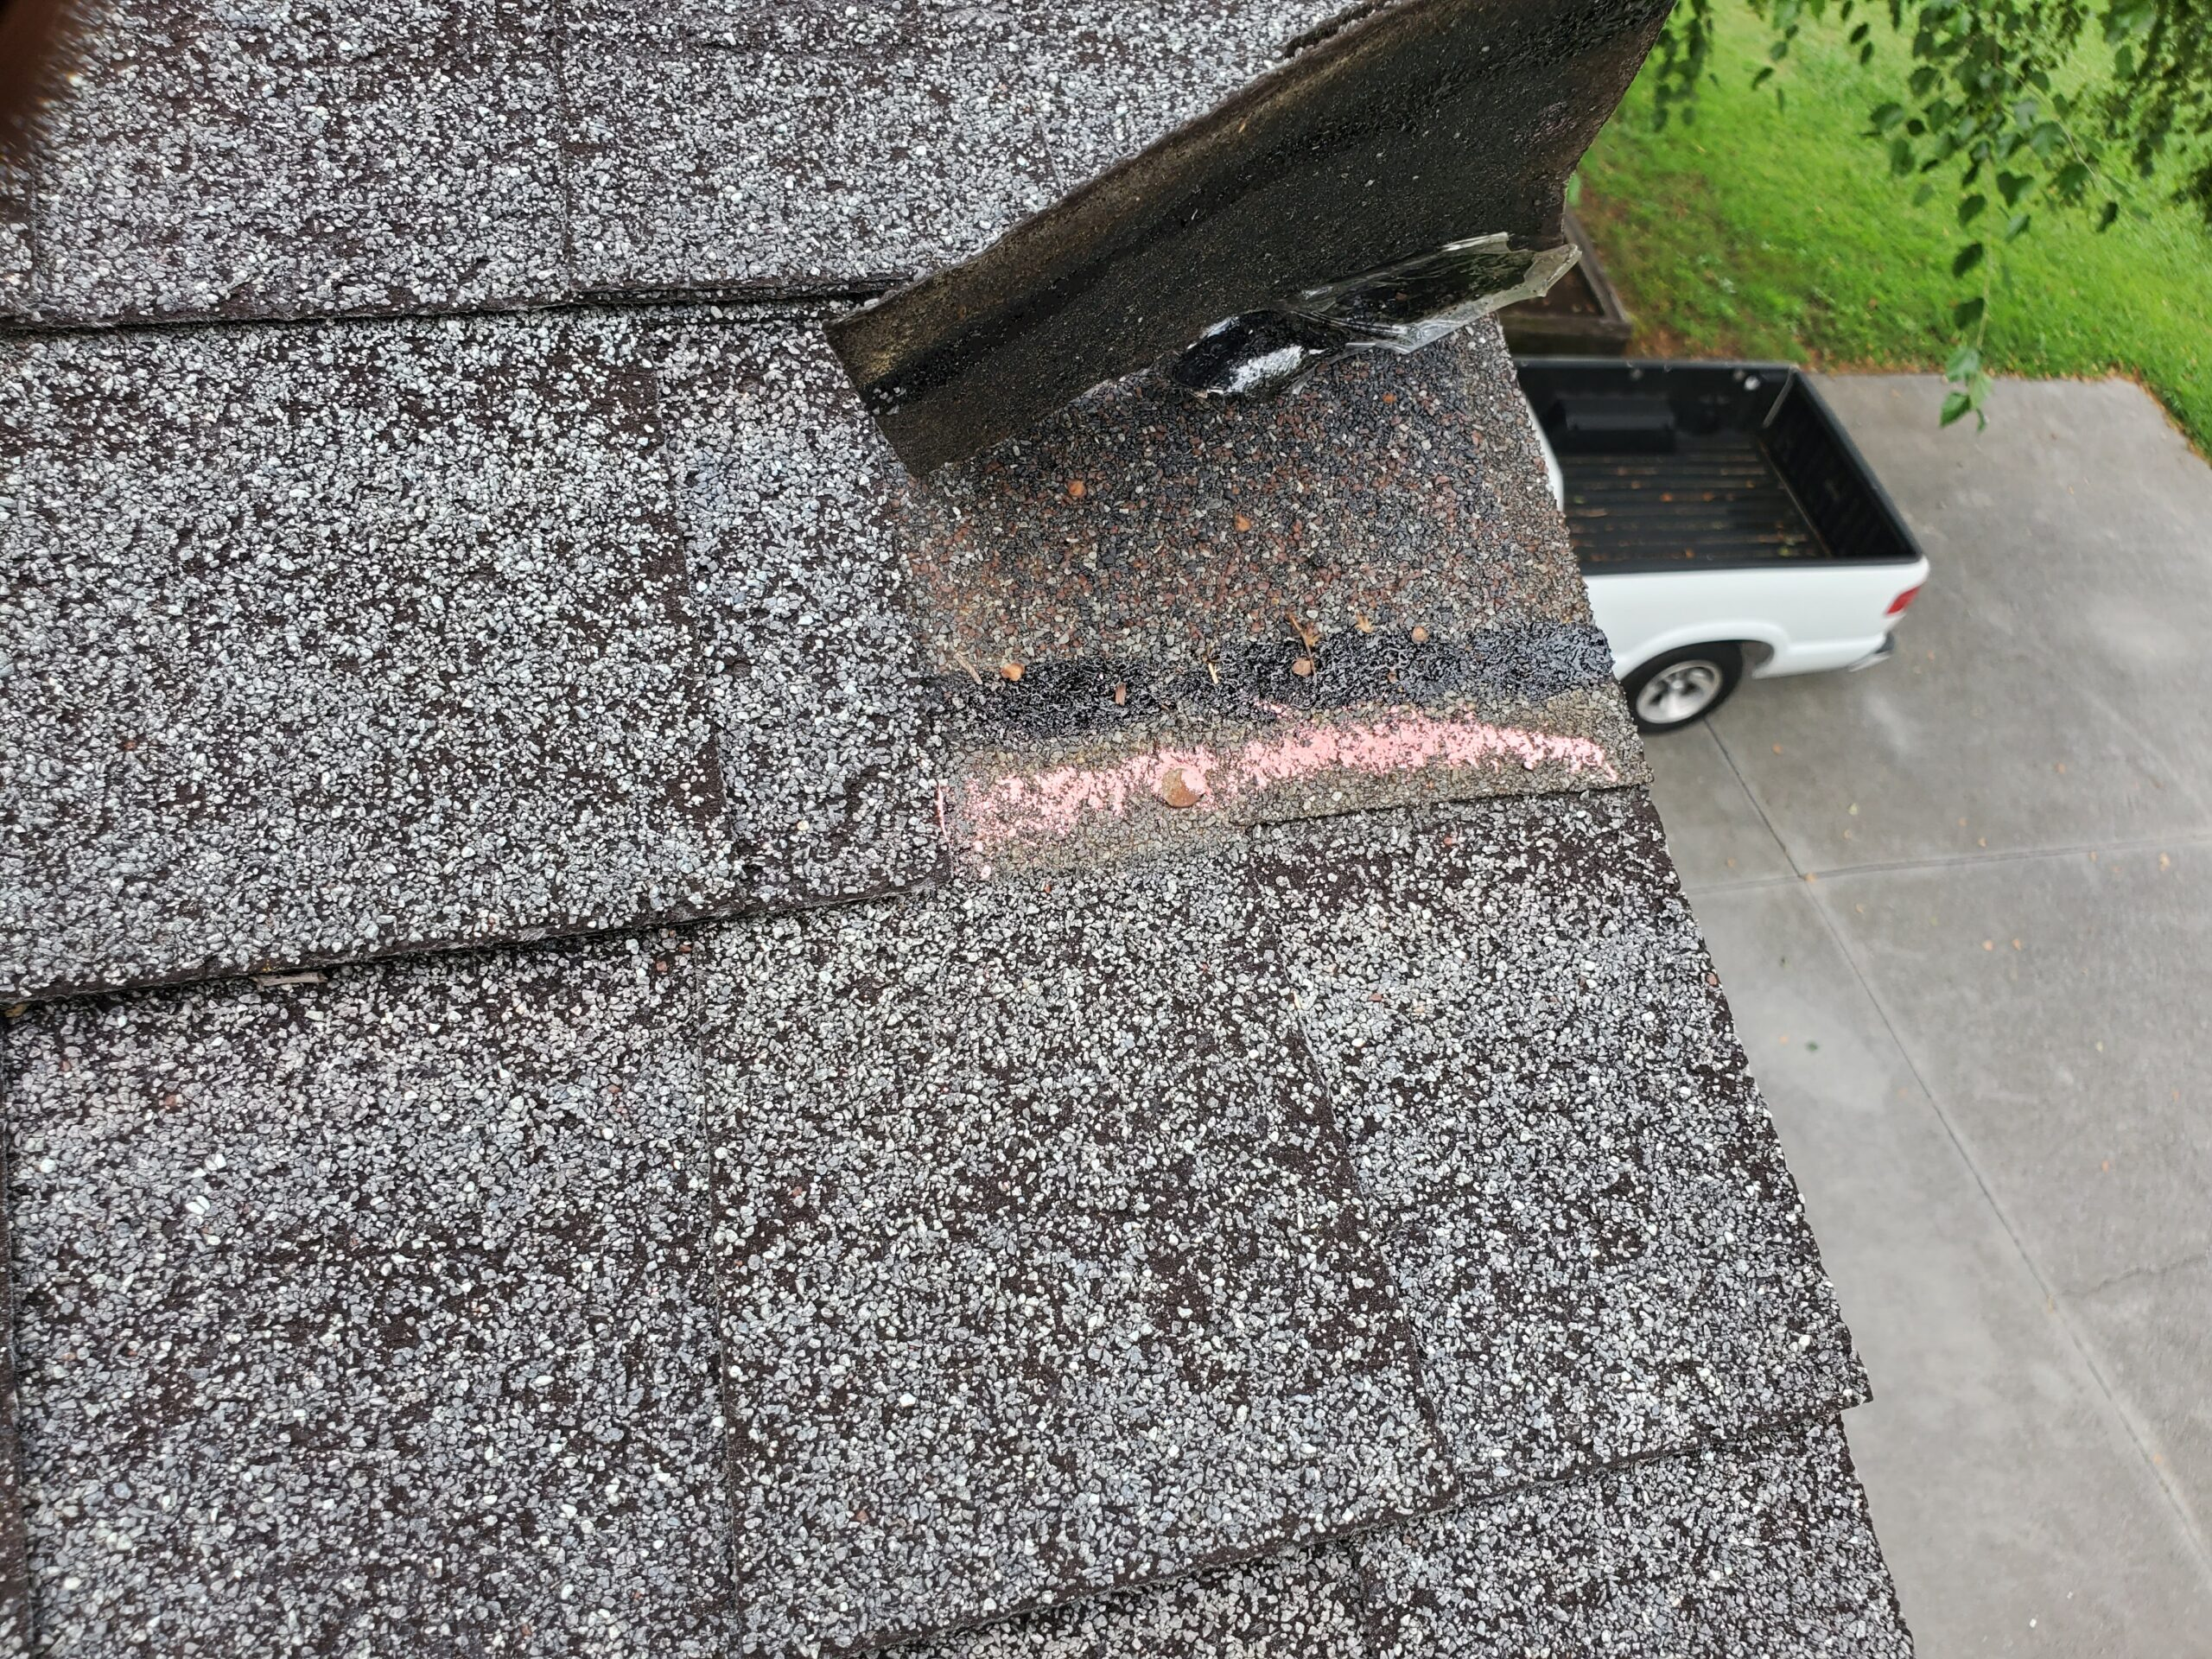 this is a shingle on the edge of a roof that is blown off